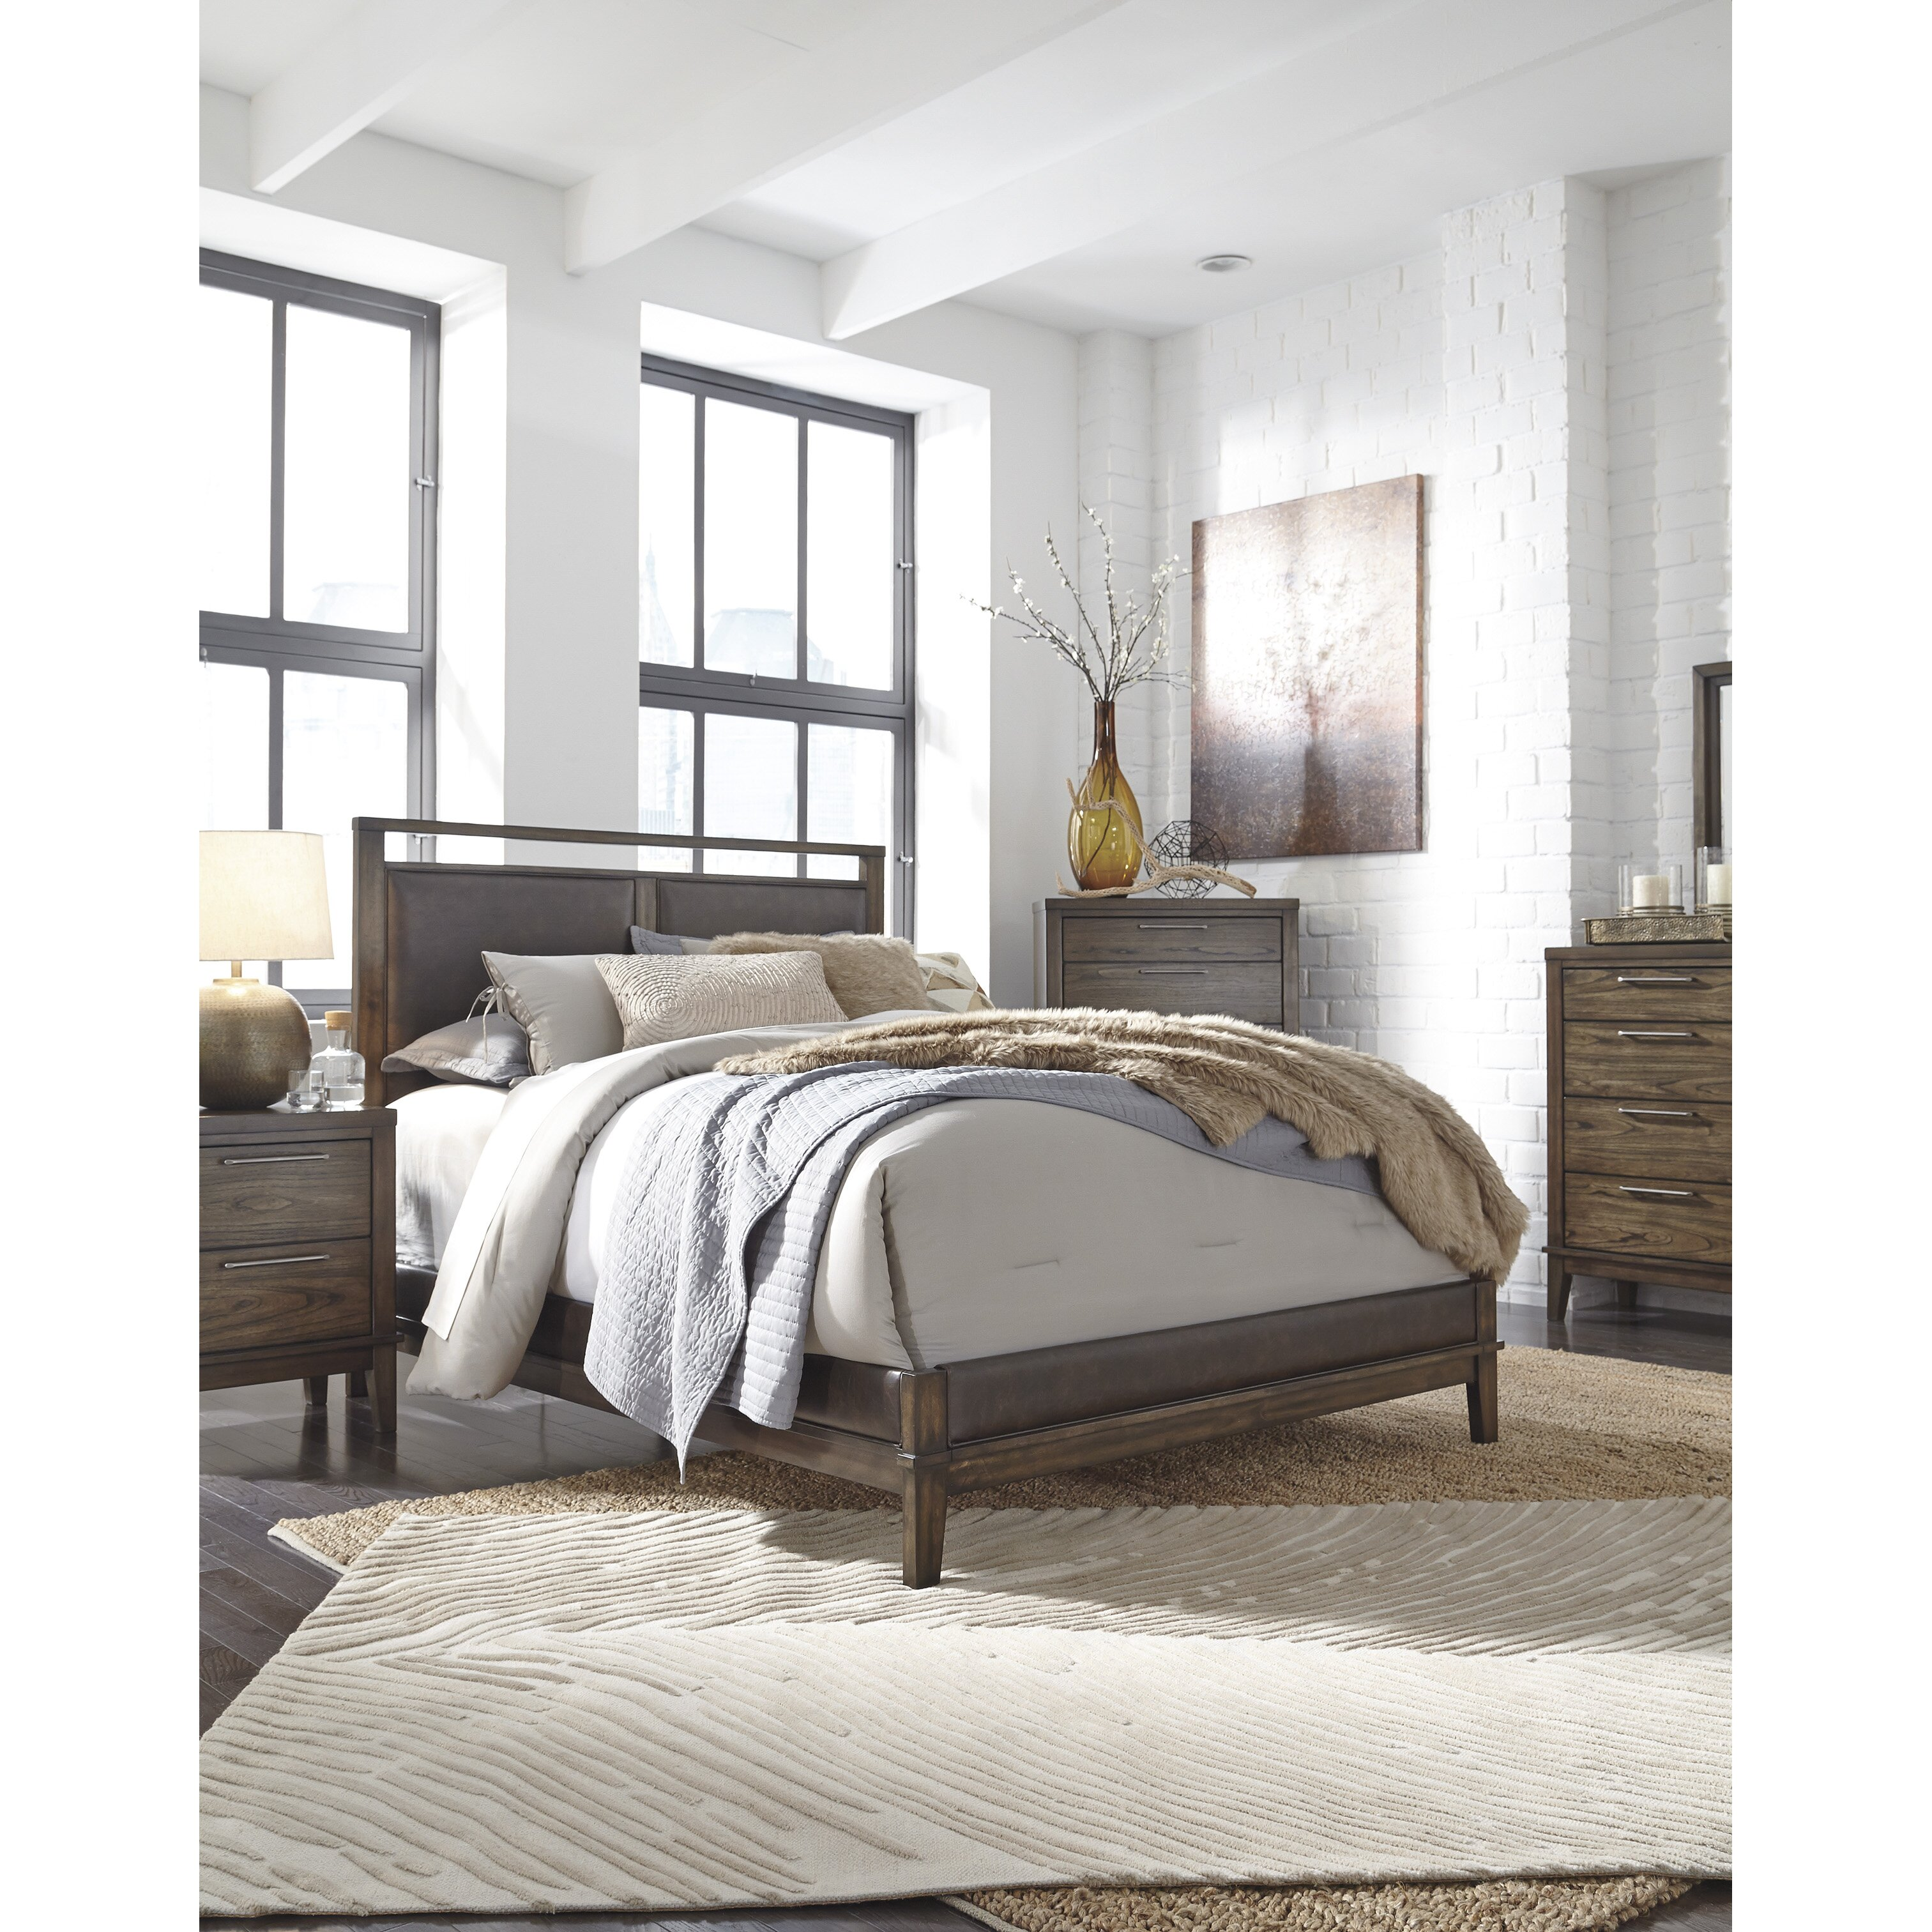 World menagerie labhira upholstered panel customizable bedroom set reviews for Bedroom sets with upholstered headboards